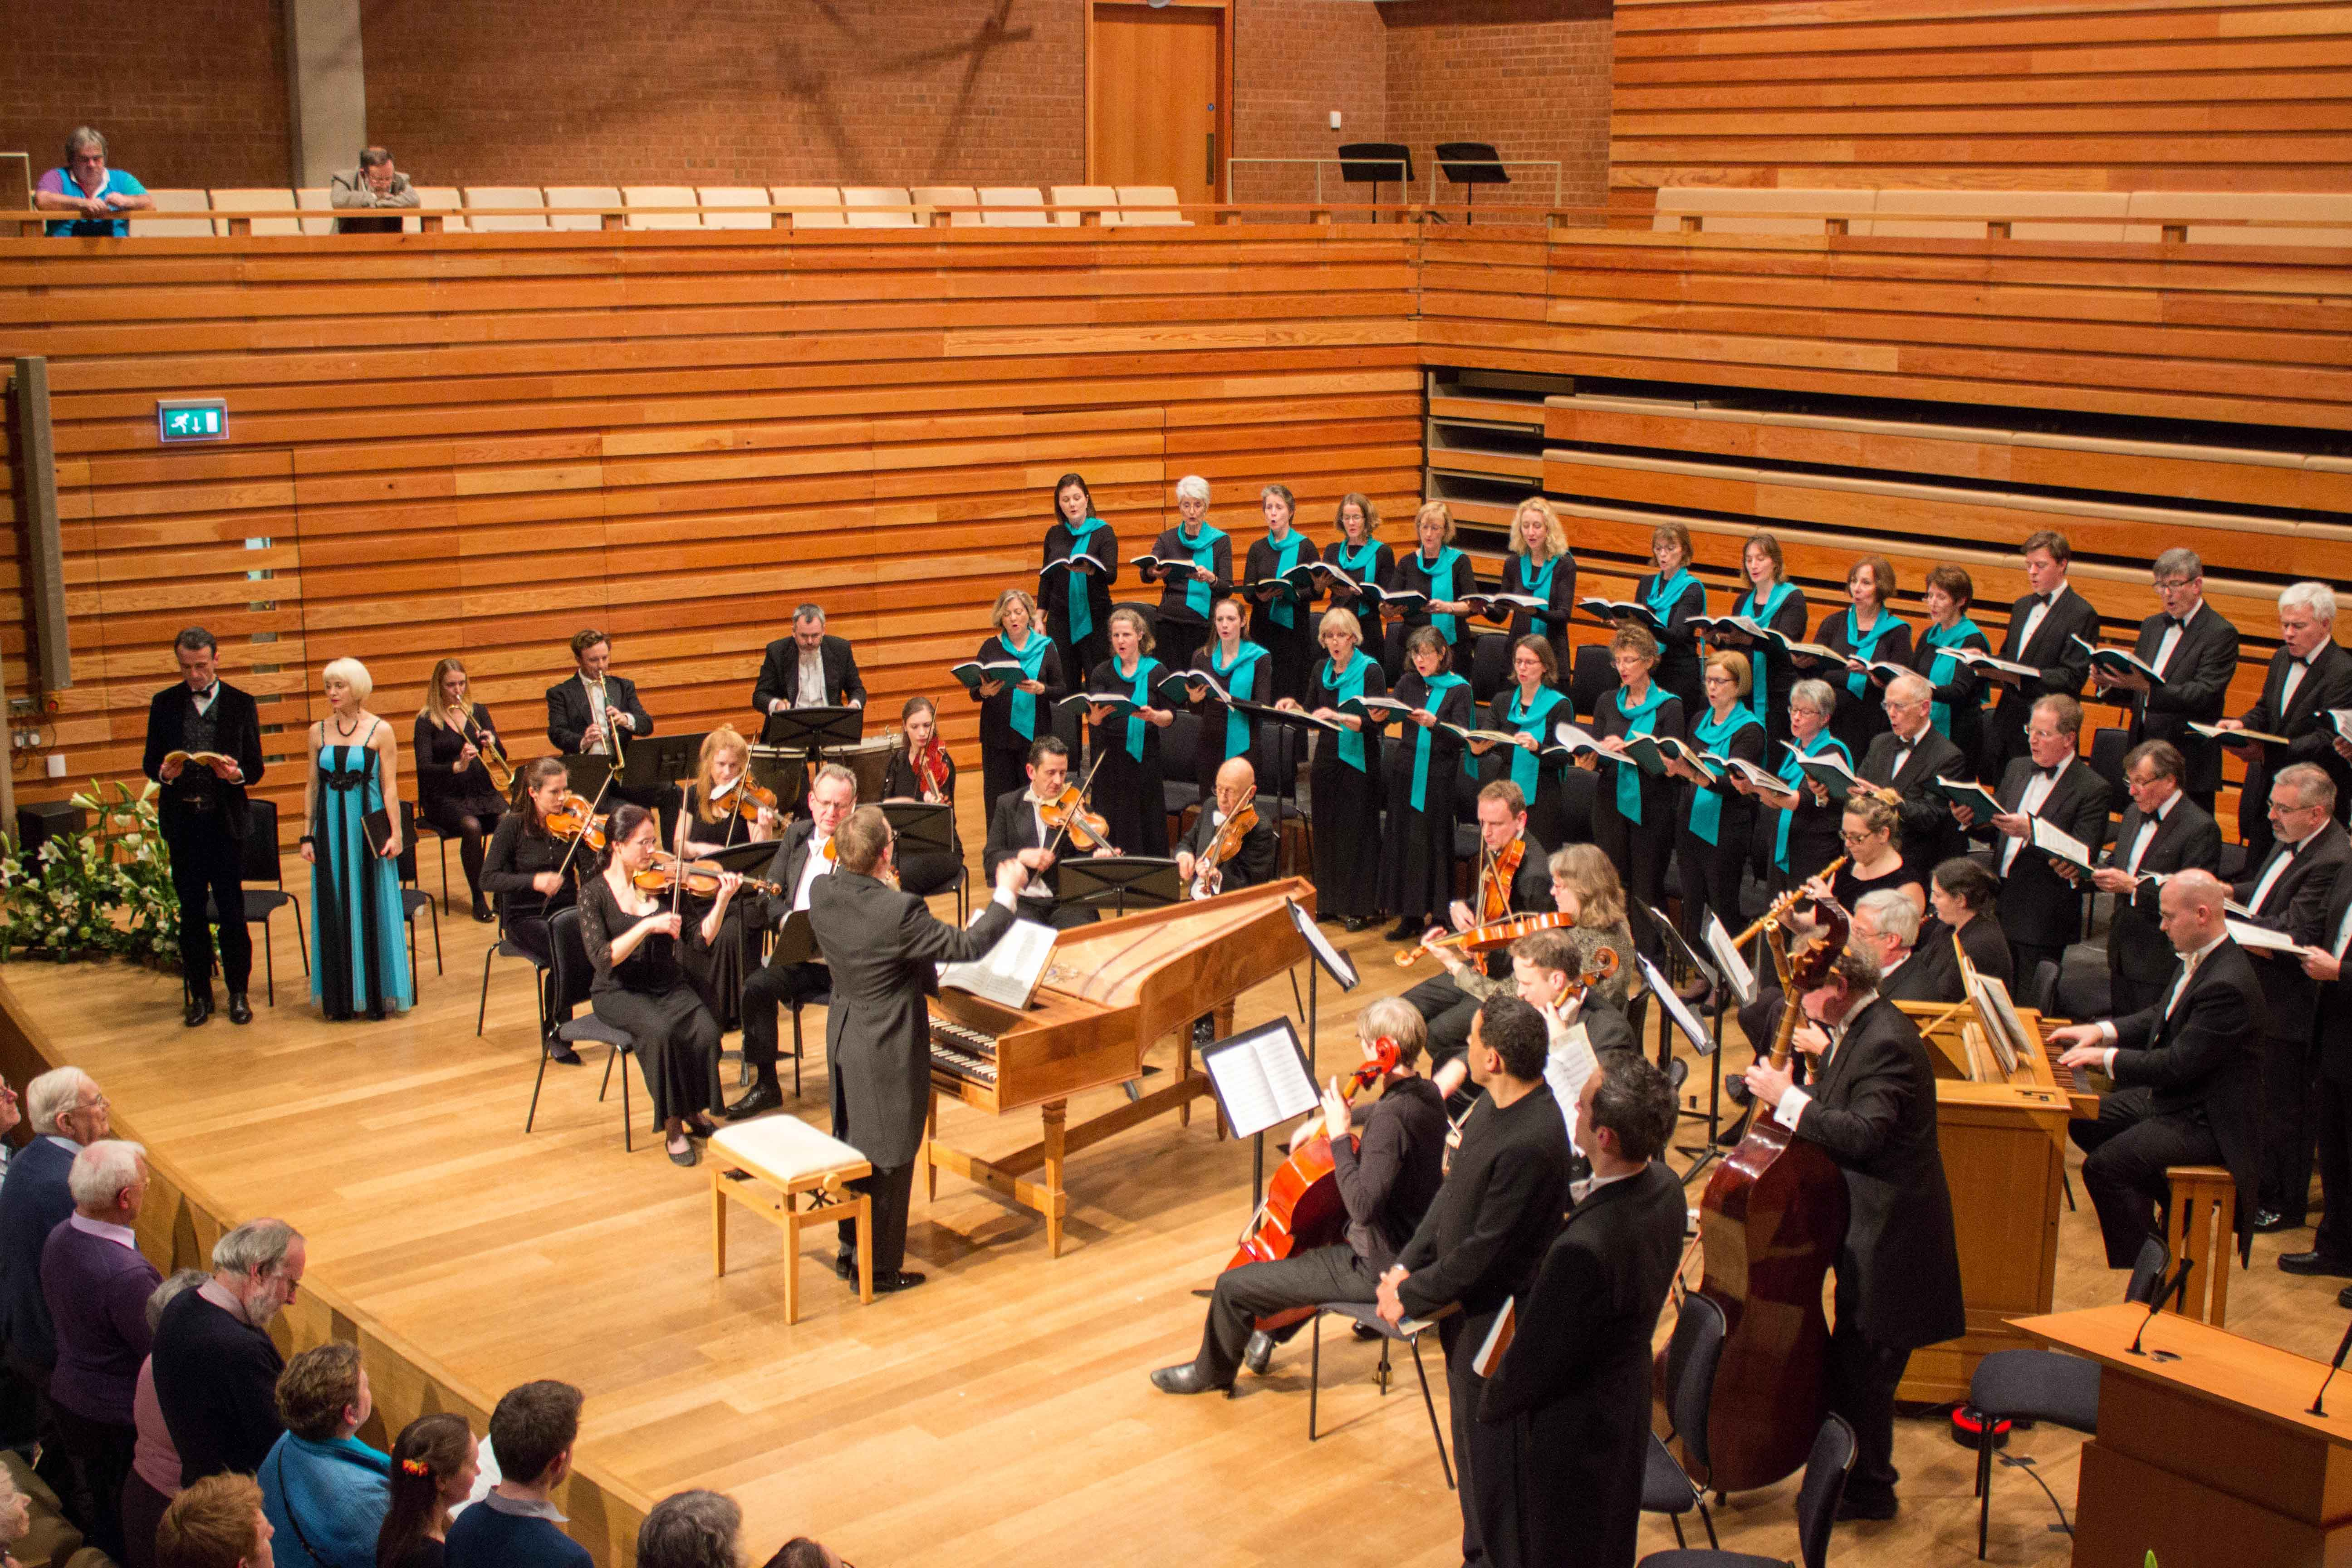 Choir, orchestra and soloists performing the Hallelujah chorus in Handel's Messiah